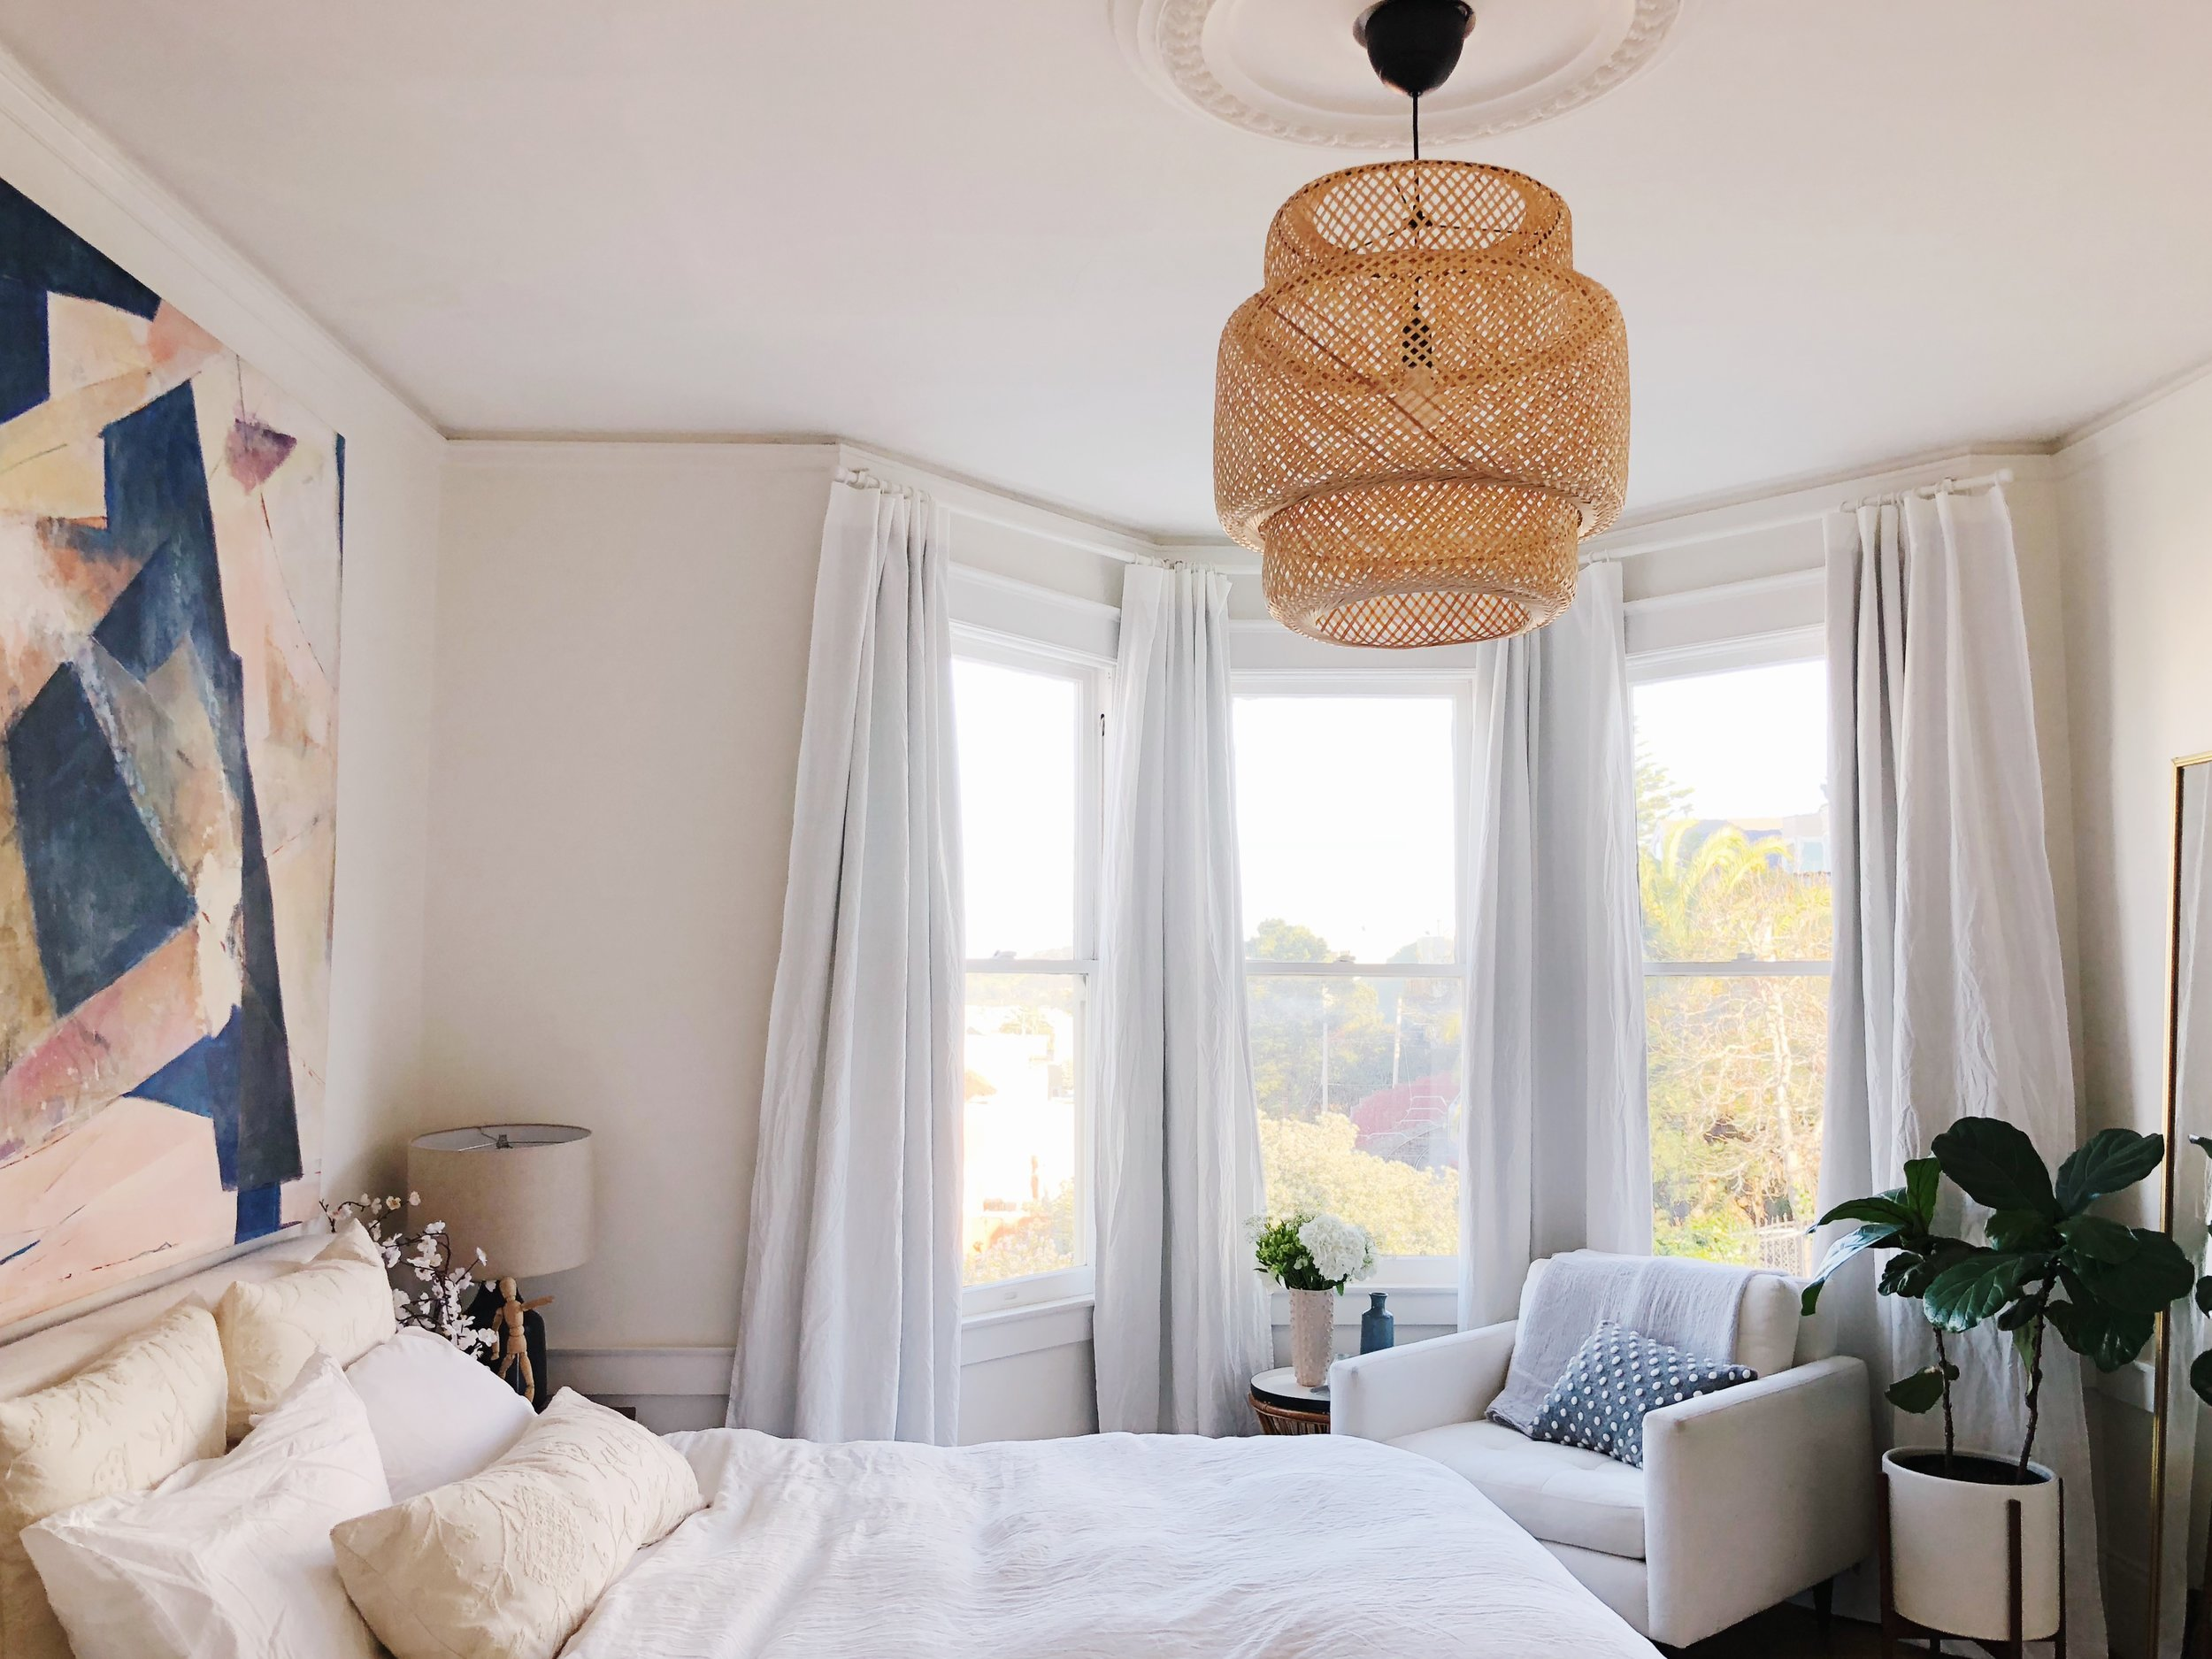 How To Hang Blackout Curtains On A Bay Window